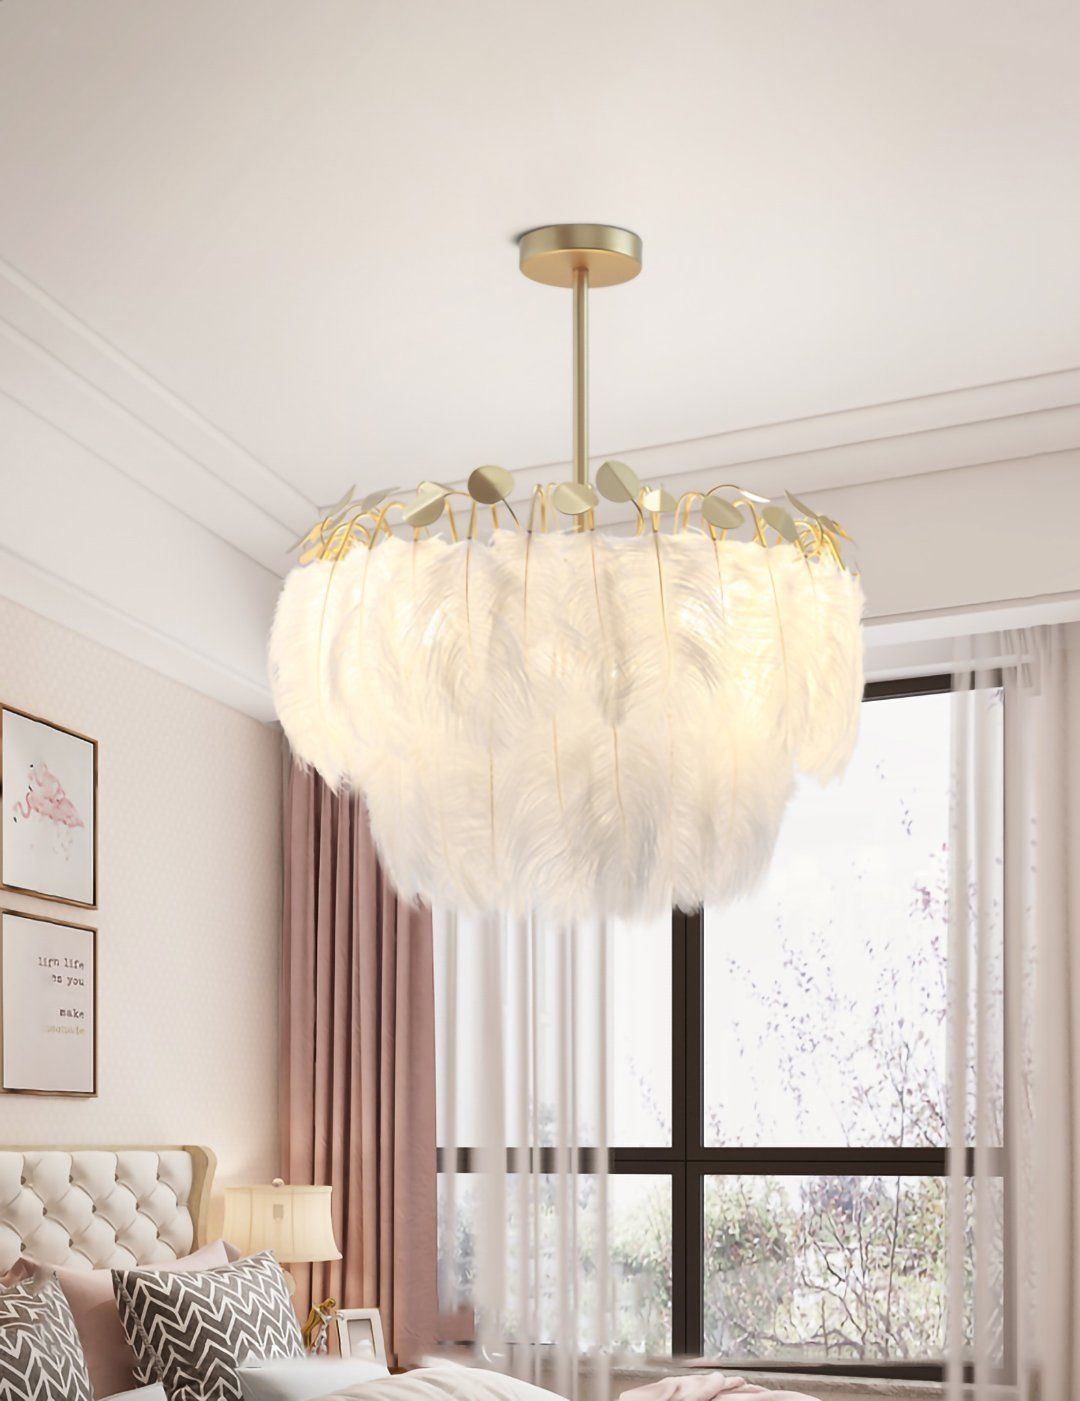 Feather Pendant Lamp Mooielight In 2020 Feather Lamp Pendant Lamp Feather Chandelier #rustic #living #room #light #fixtures